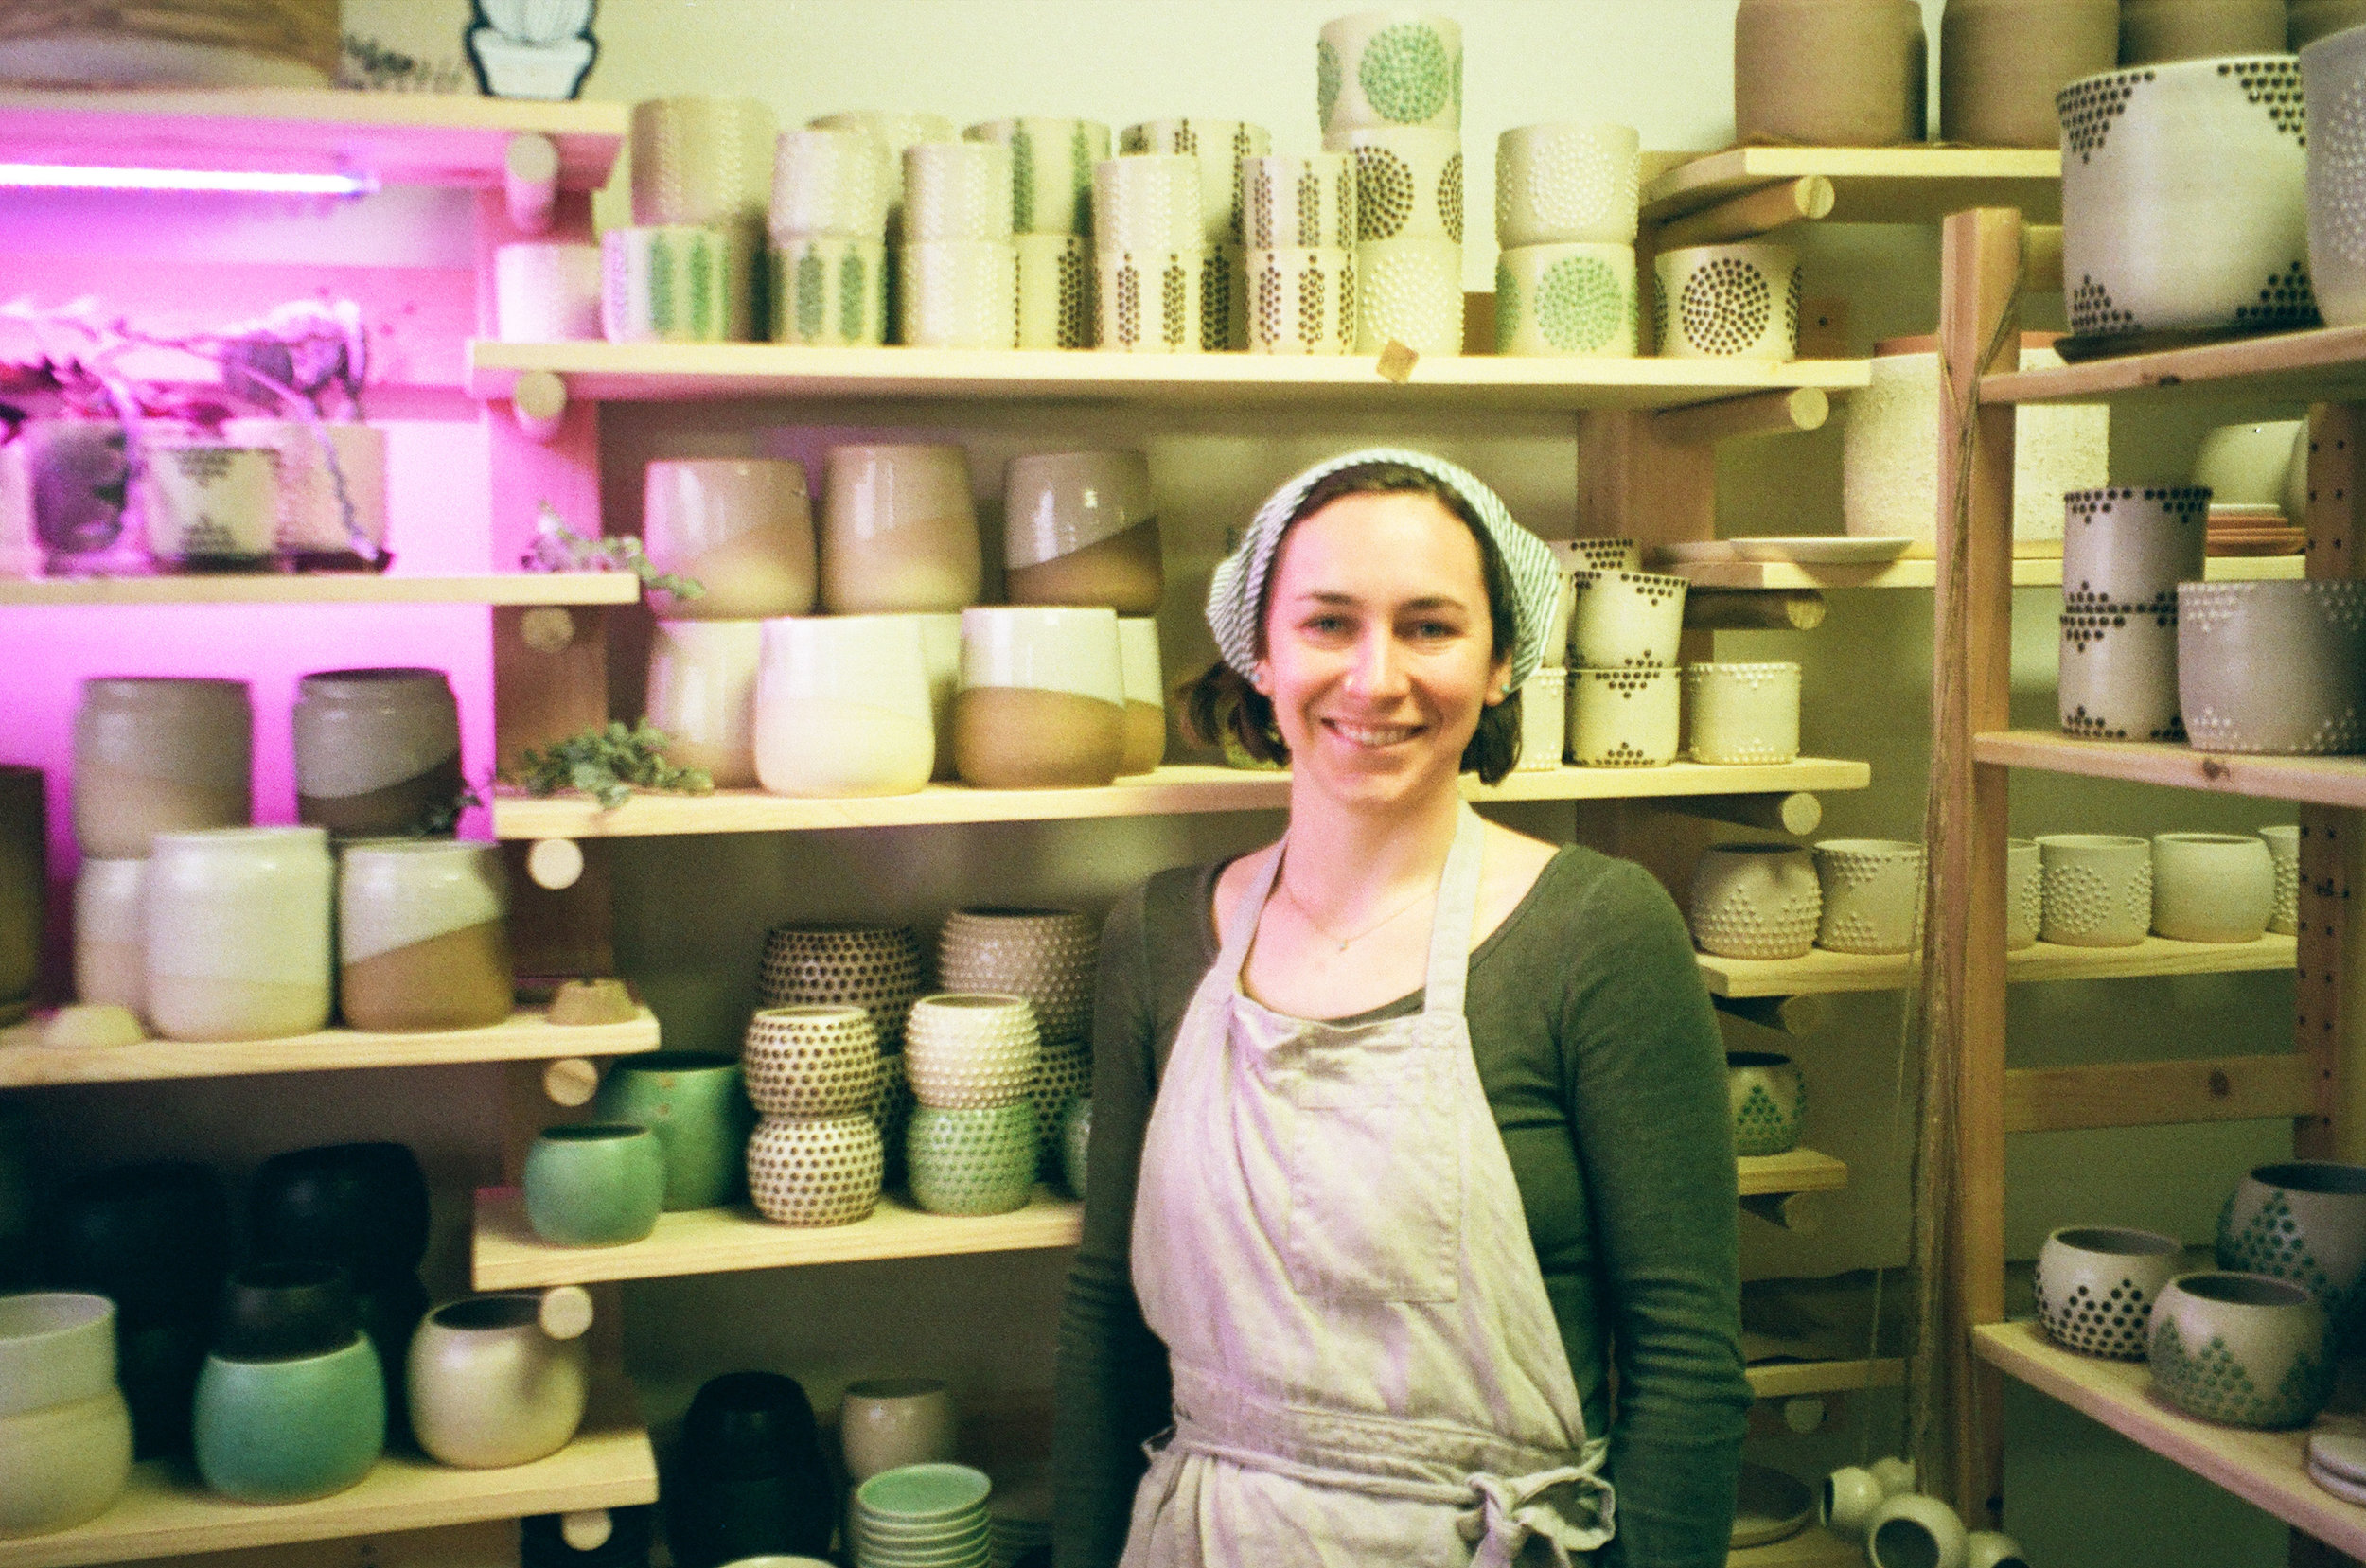 Interviewed Carrie Hause of Held Ceramics on her creative process and took photos at her studio.